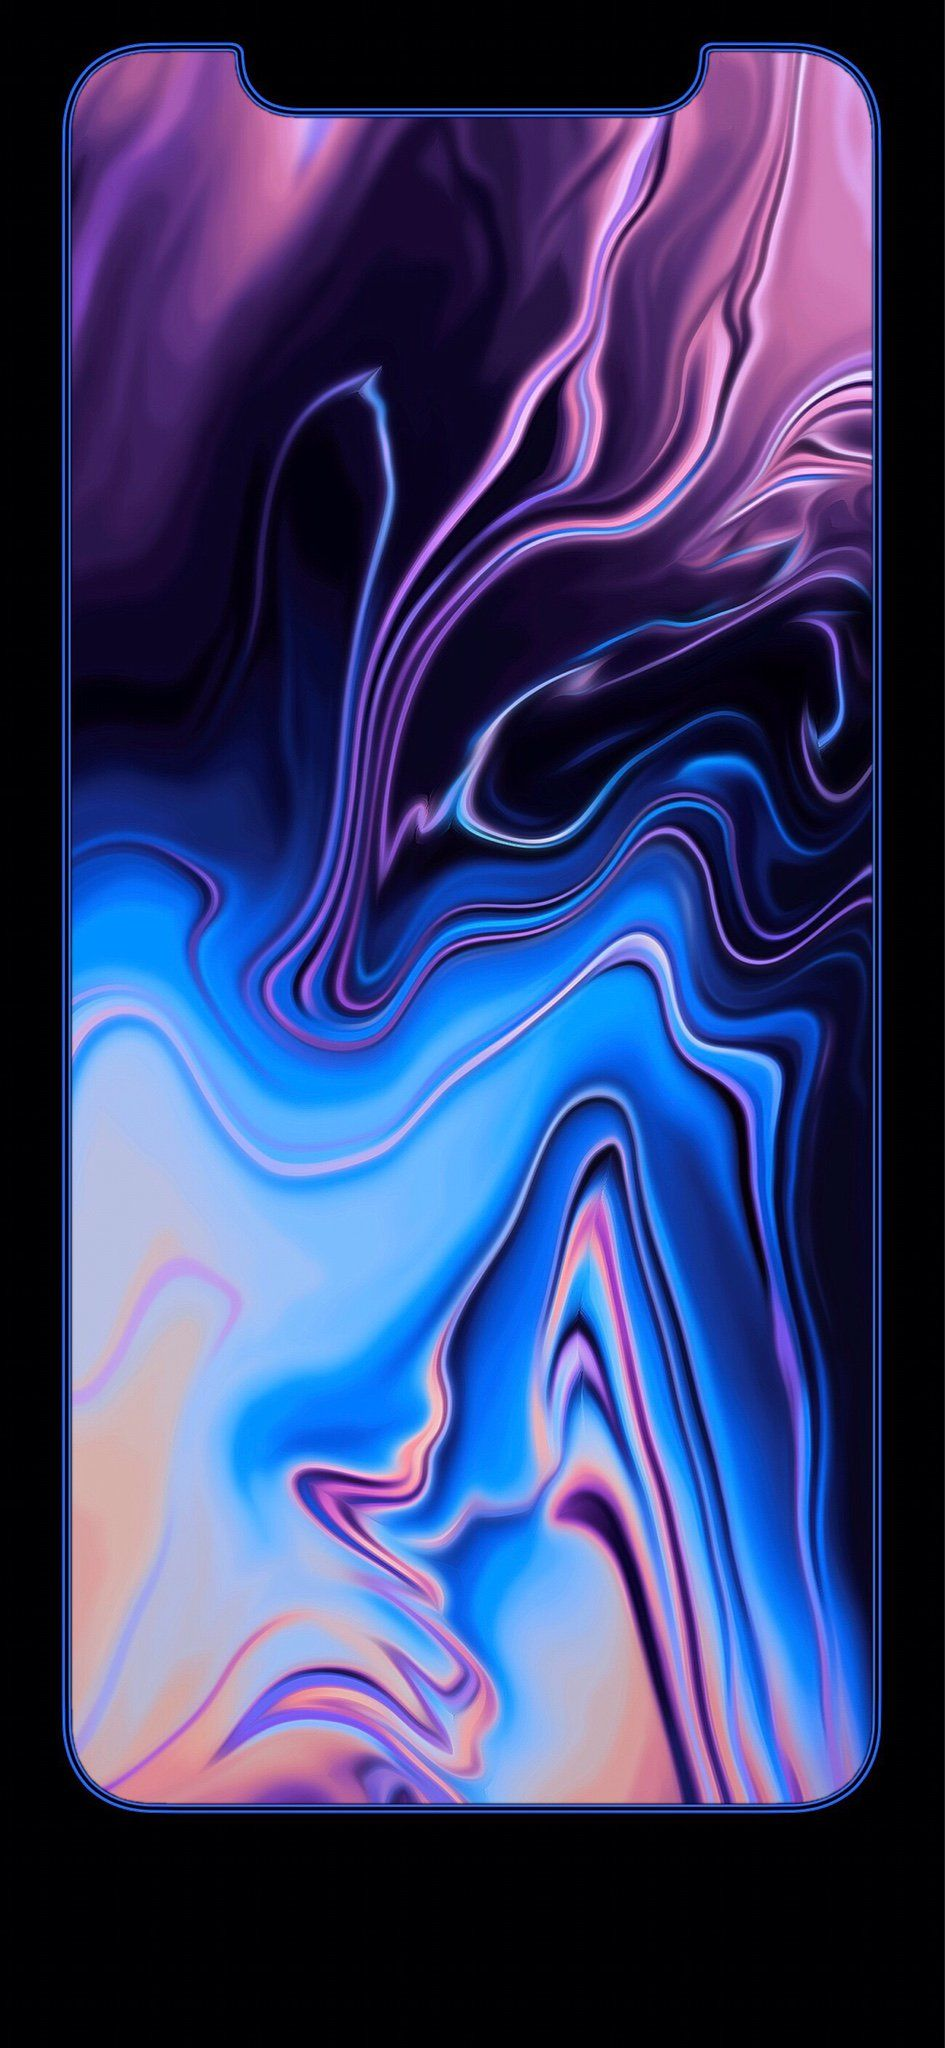 Pin by Myron on Iphone wallpaper Abstract wallpaper